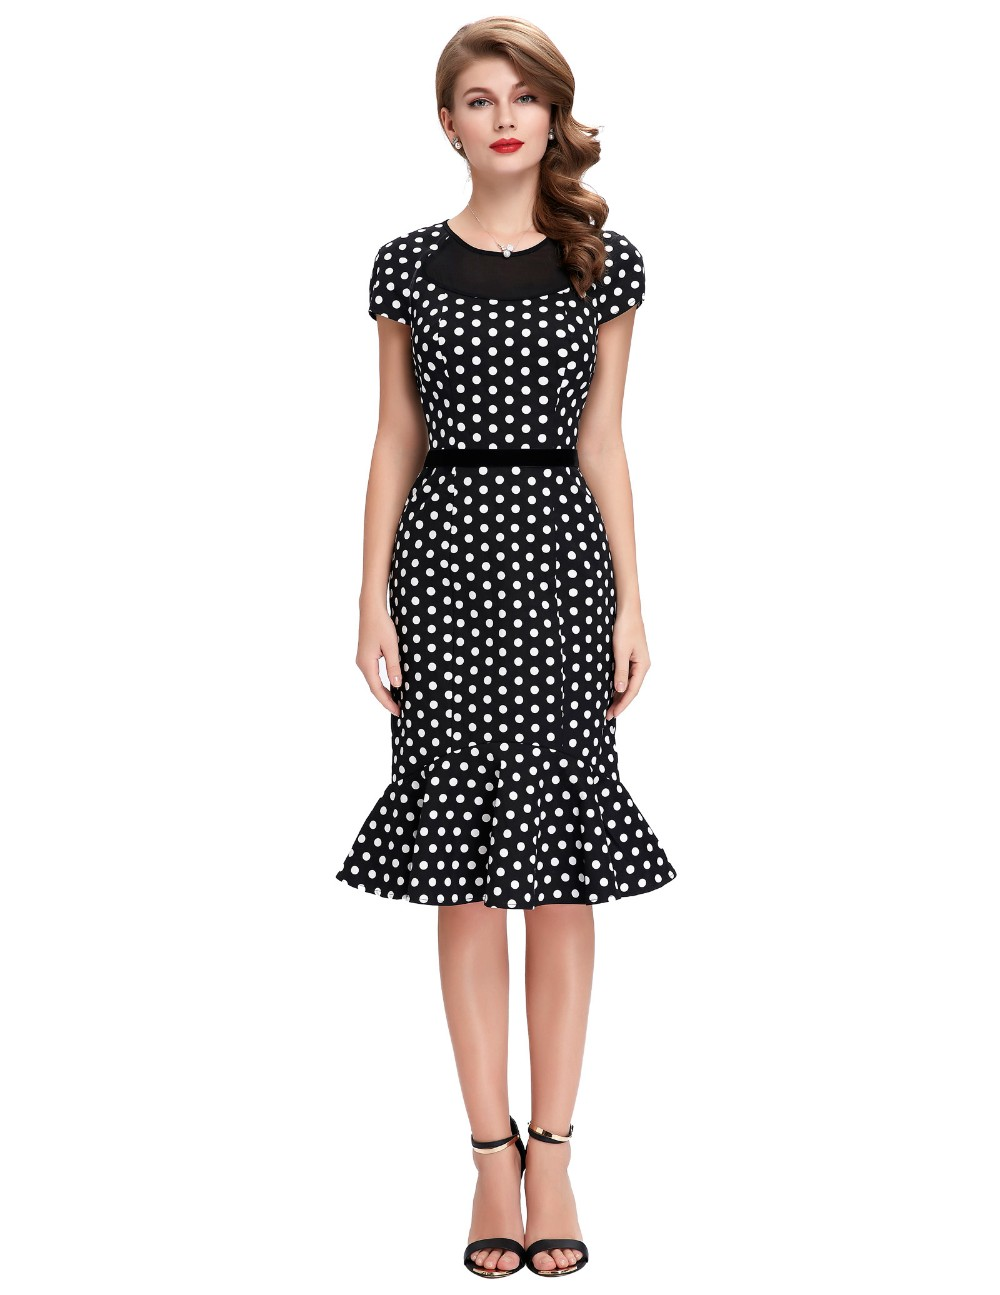 Belle Poque Stock Cap Sleeve Vintage Retro 1950s Cotton Polka Dots Mermaid Bodycon Dress BP000176-1